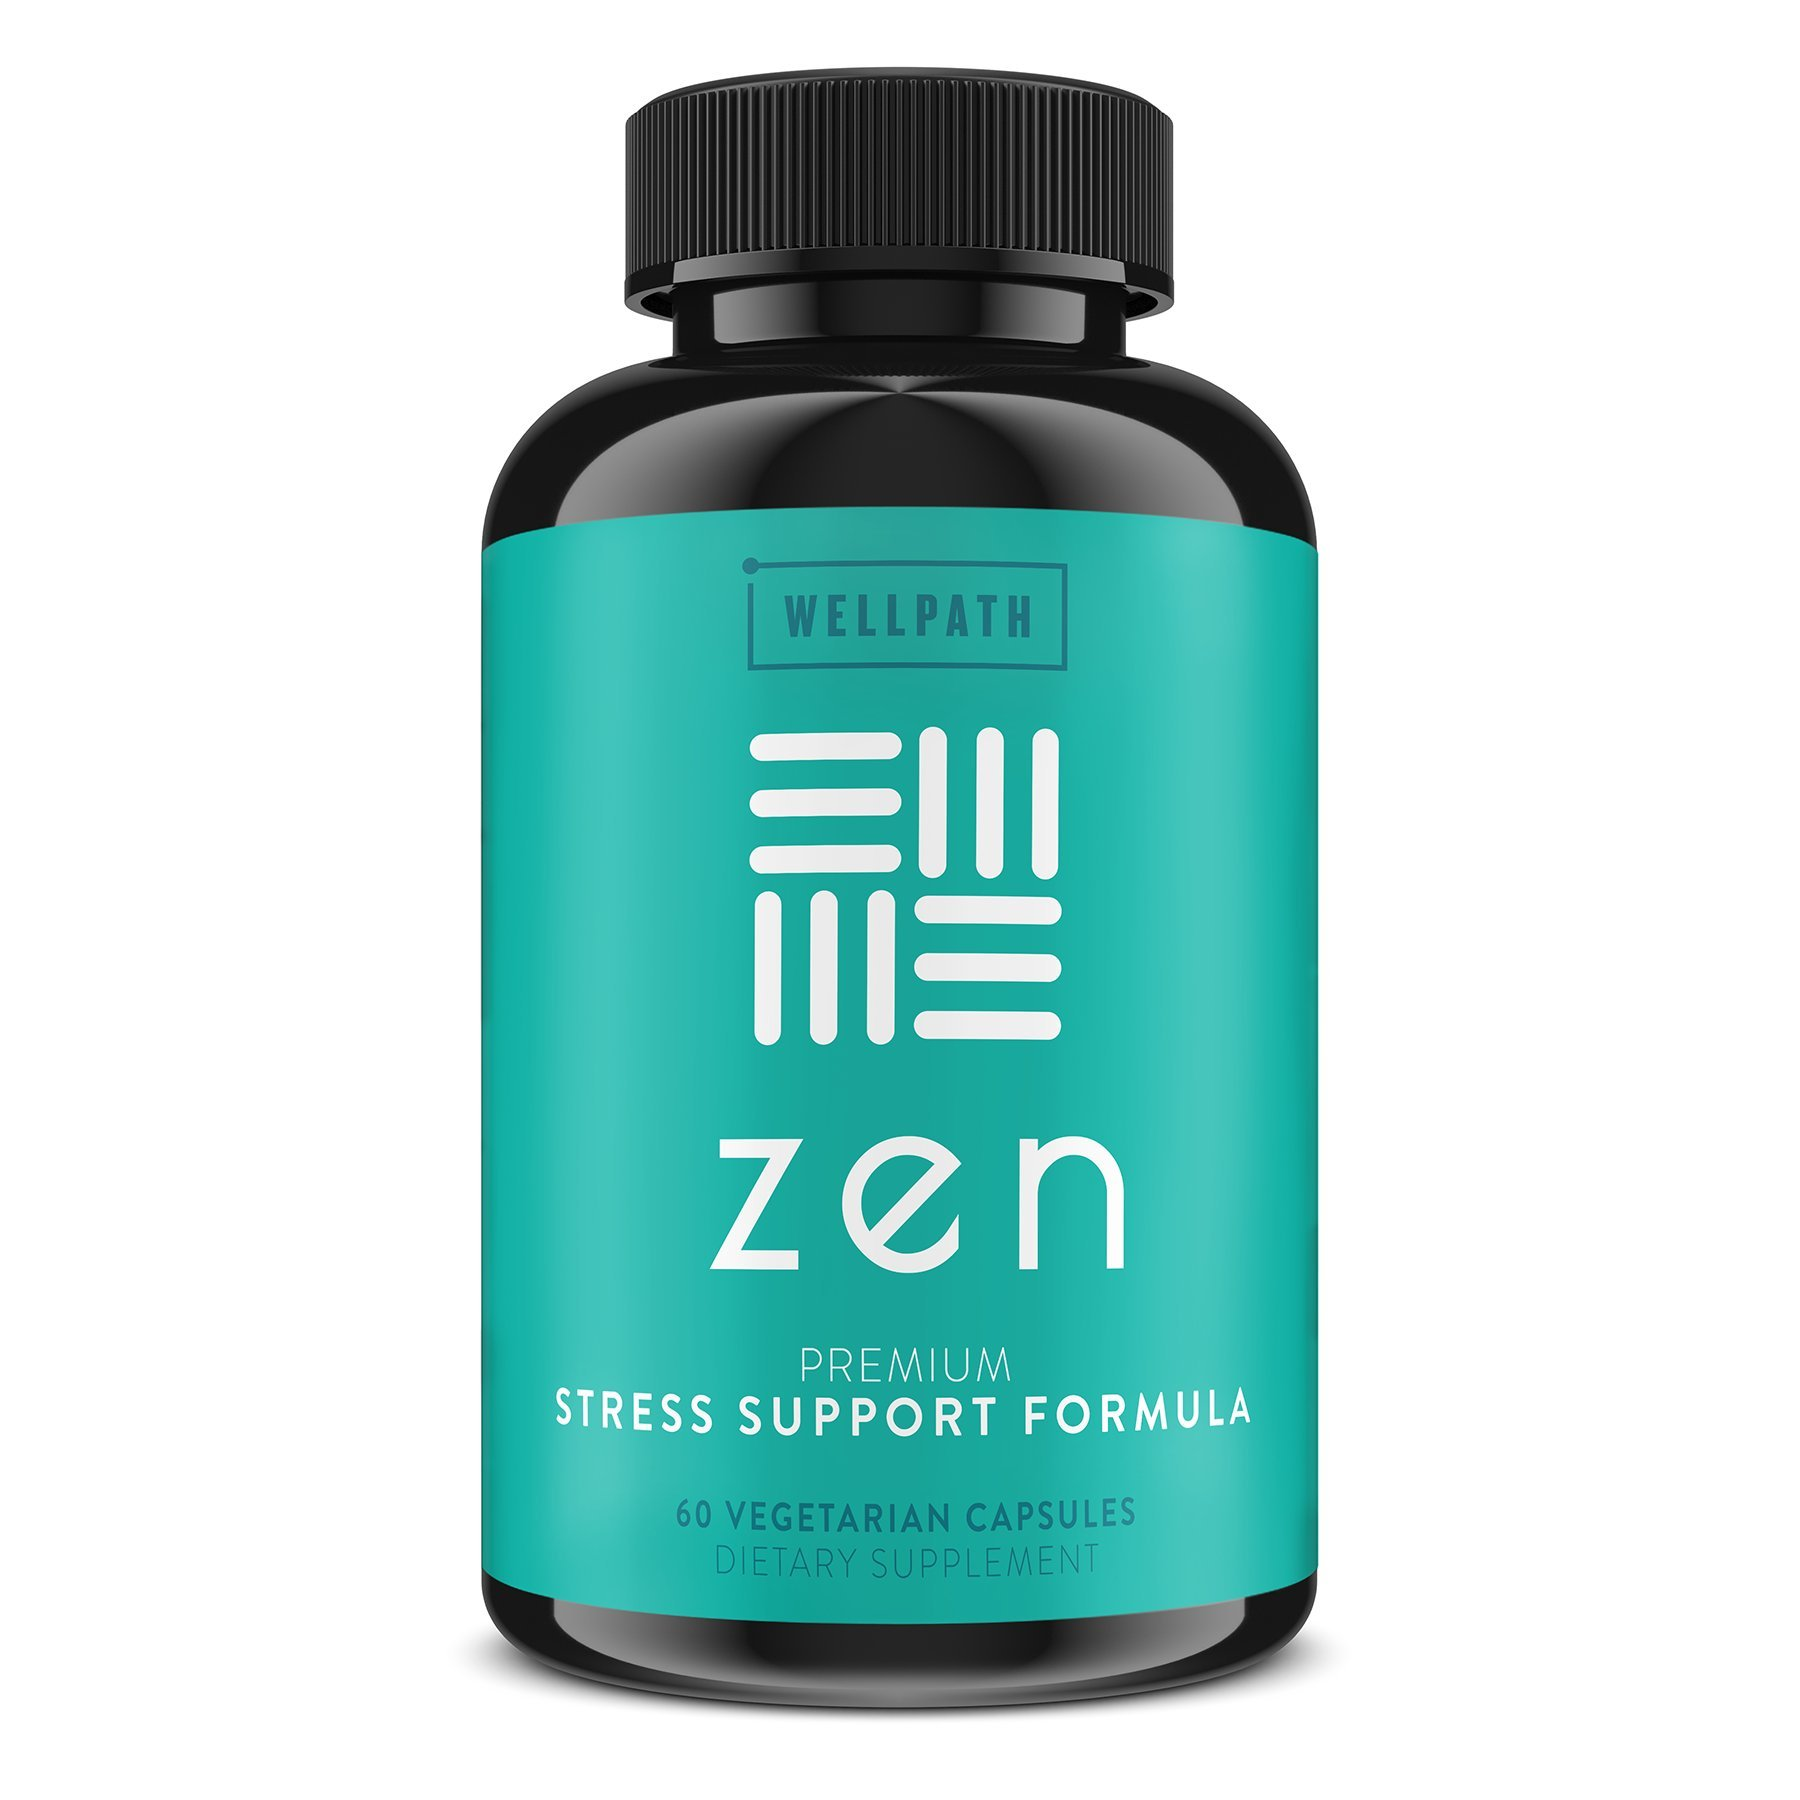 Zen Anxiety and Stress Relief Supplement - Natural Herbal Formula Supporting Calm, Positive Mood with Ashwagandha, L-Theanine, Rhodiola Rosea - 60 Vegetarian Capsules by WellPath